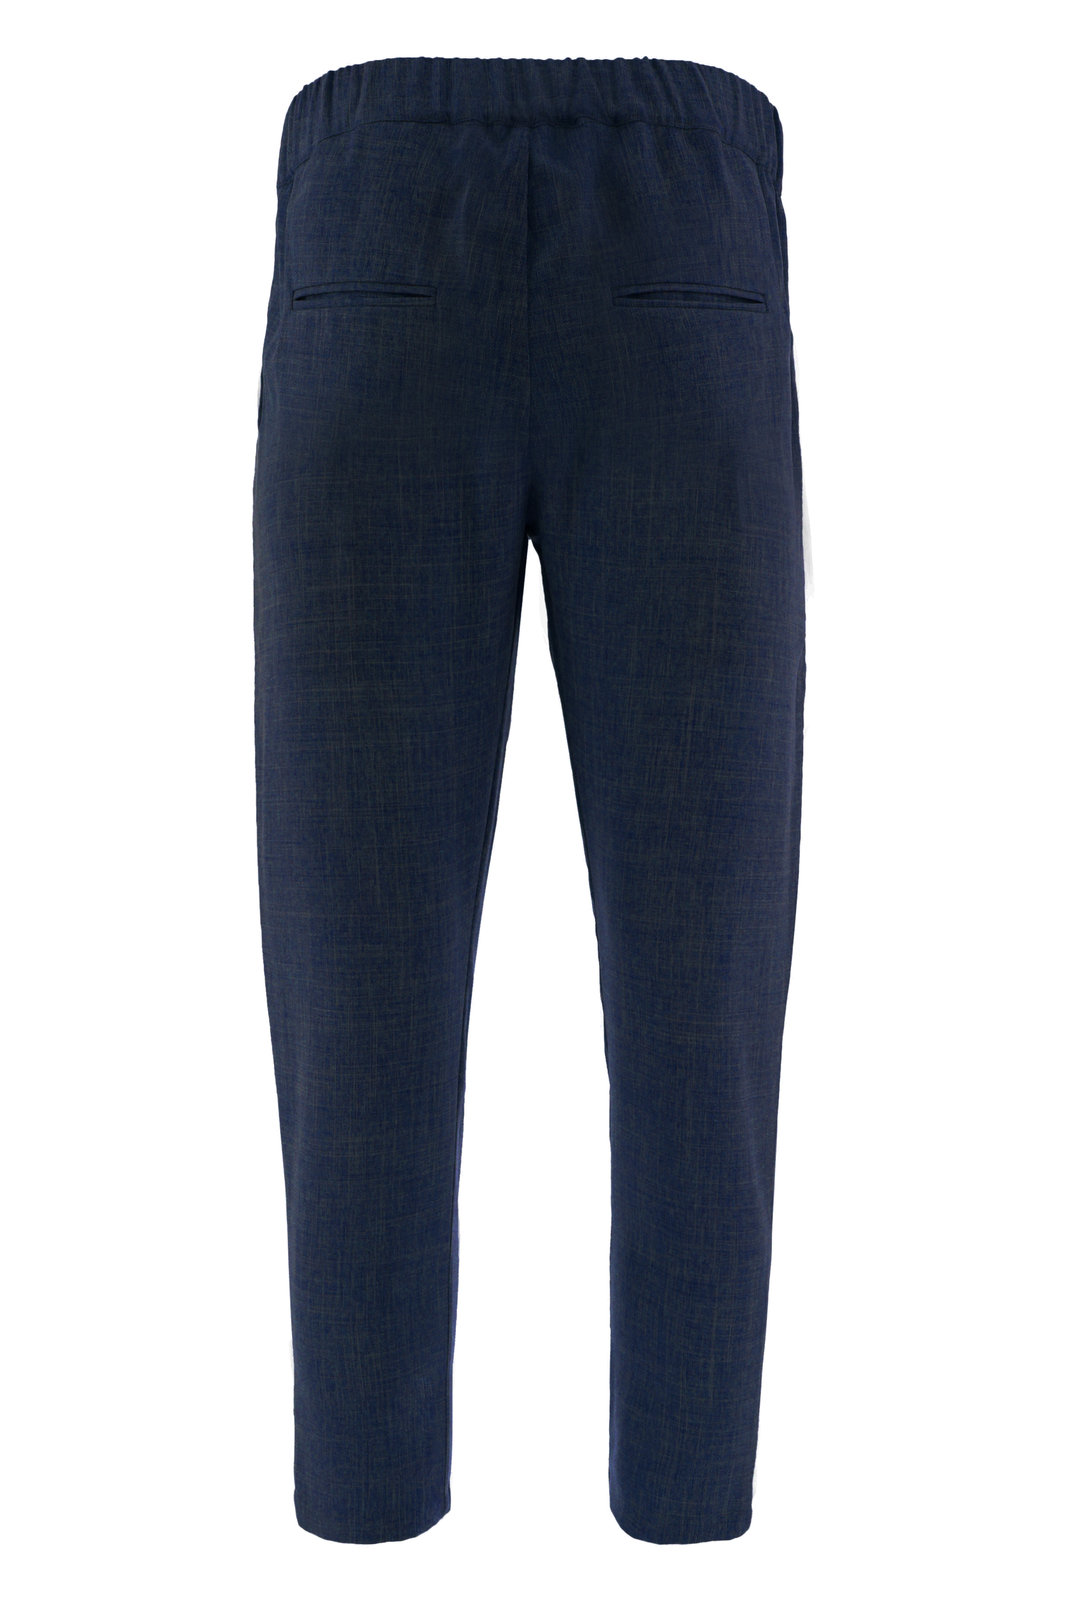 Navy Blue Tailored Trousers